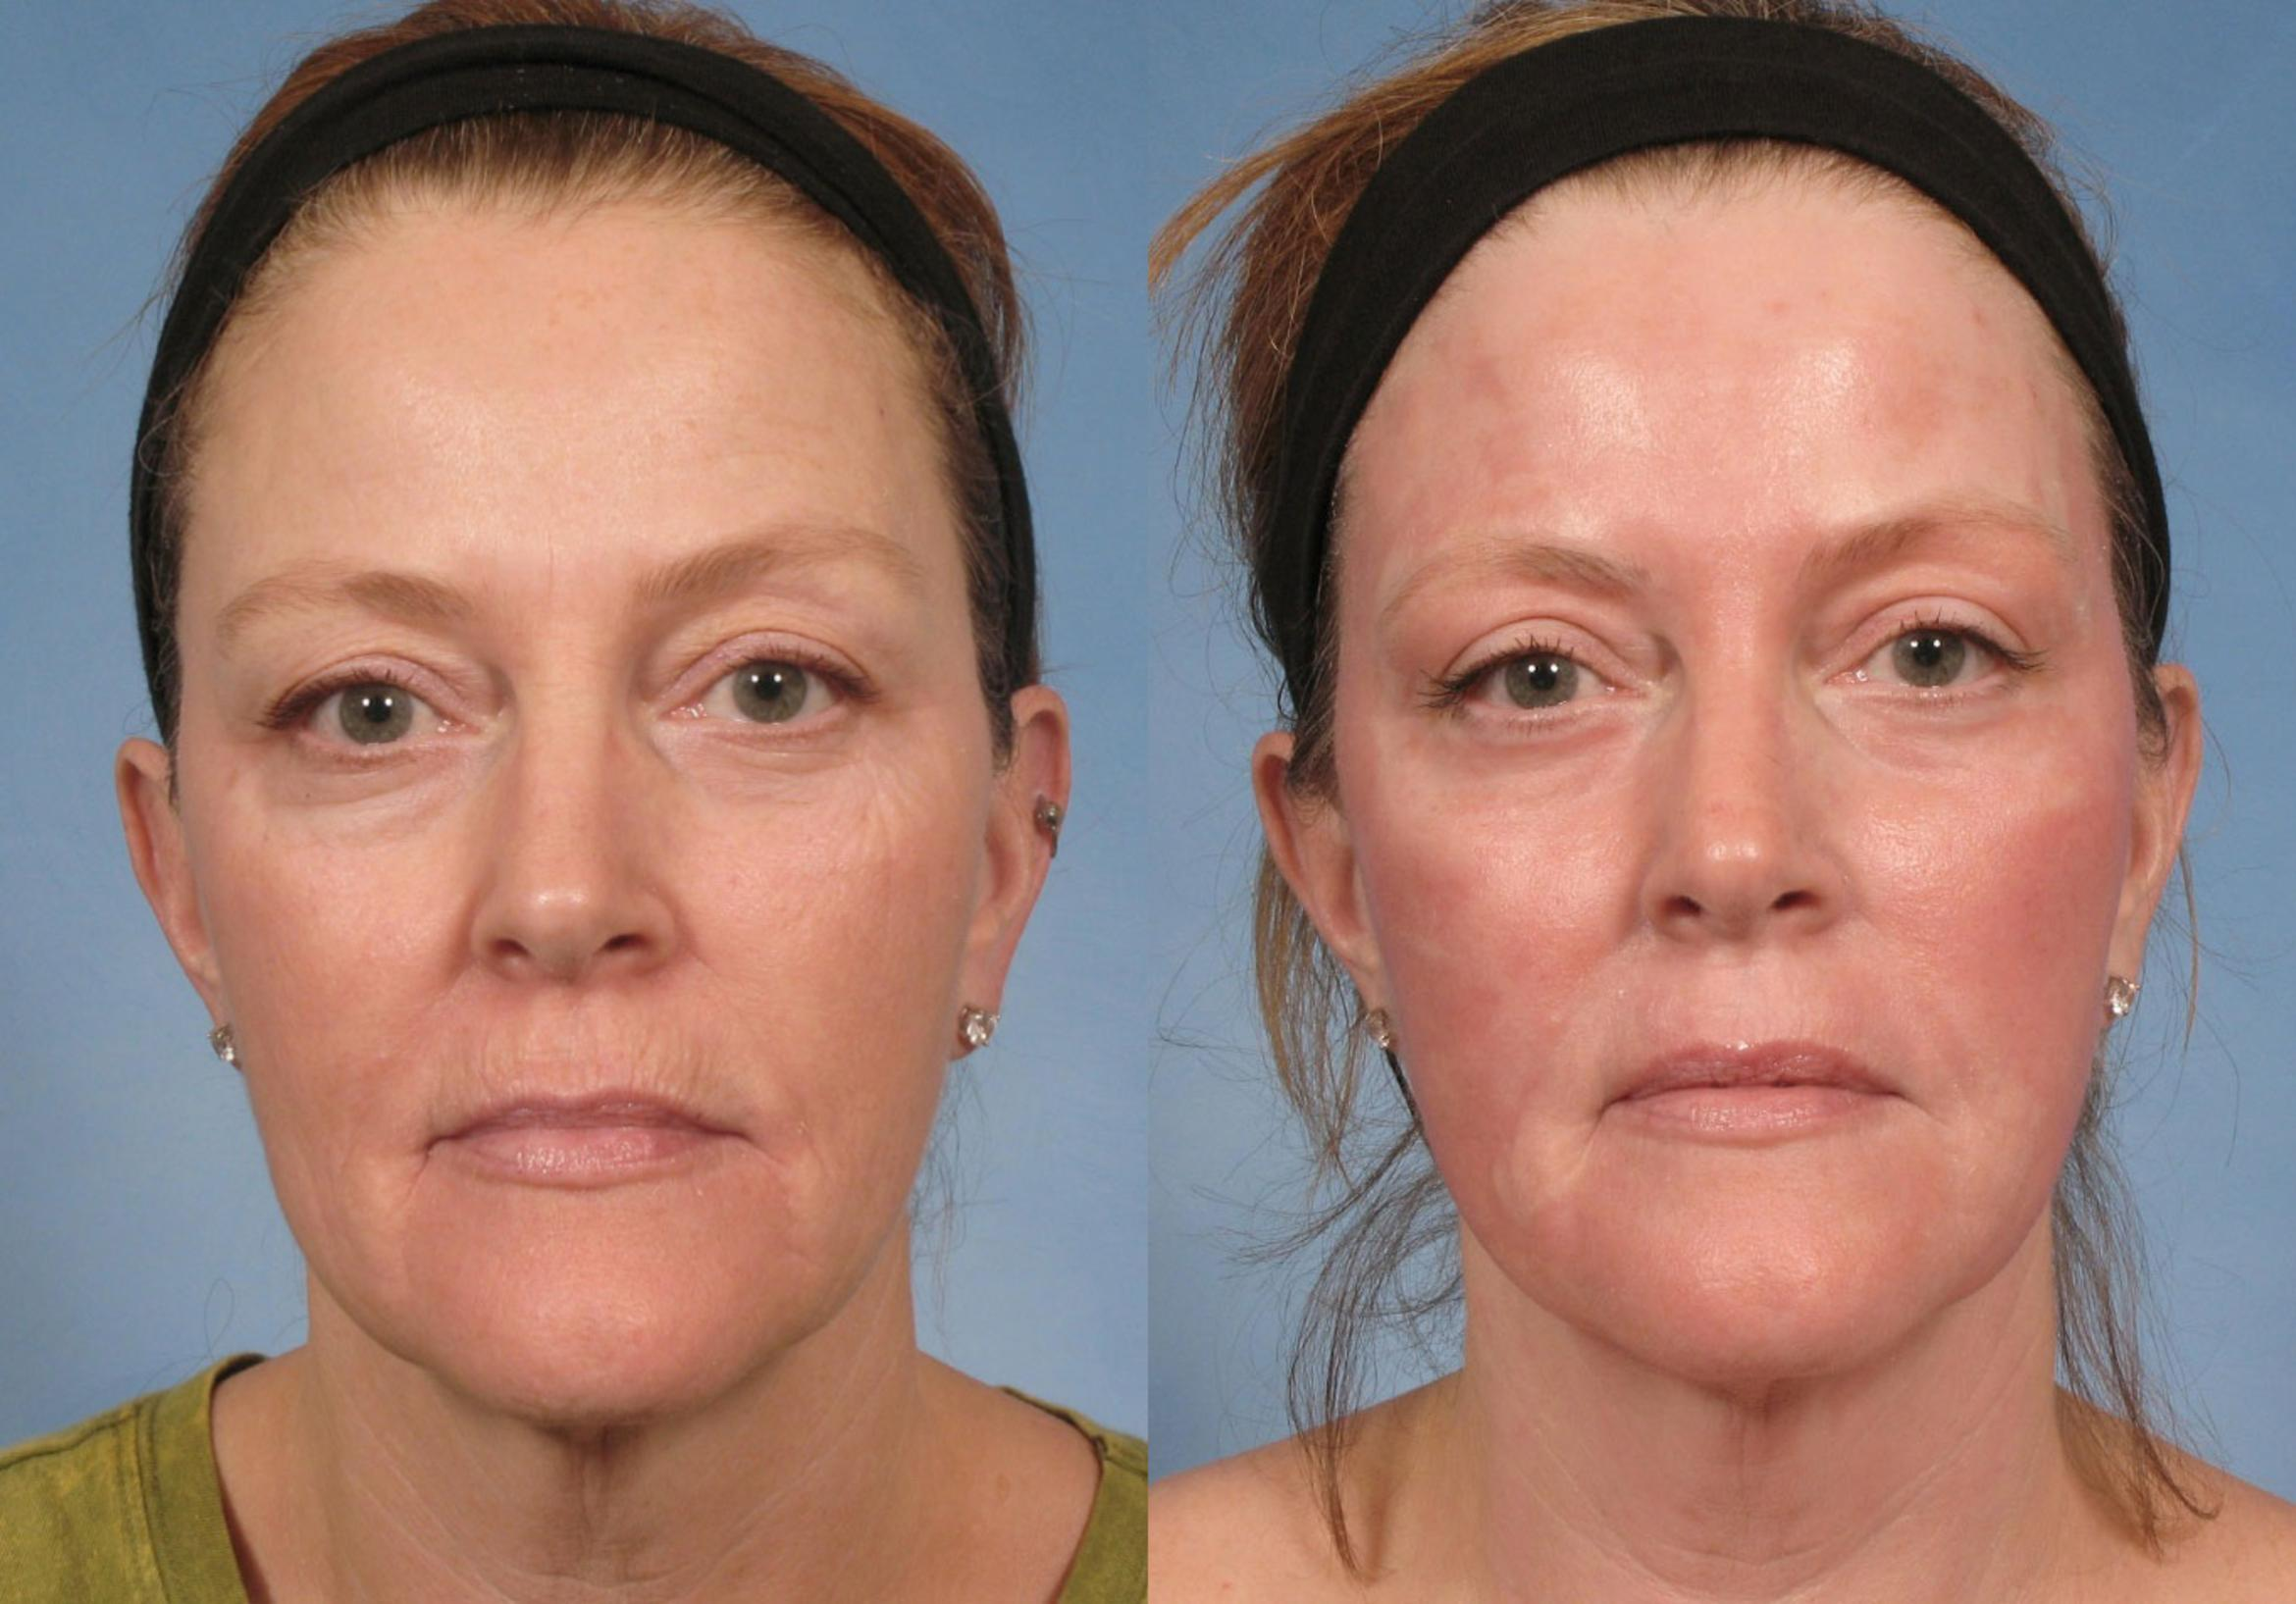 Croton Oil Peel Case 103 Before & After View #1 | Naples, FL | Kent V. Hasen, M.D.